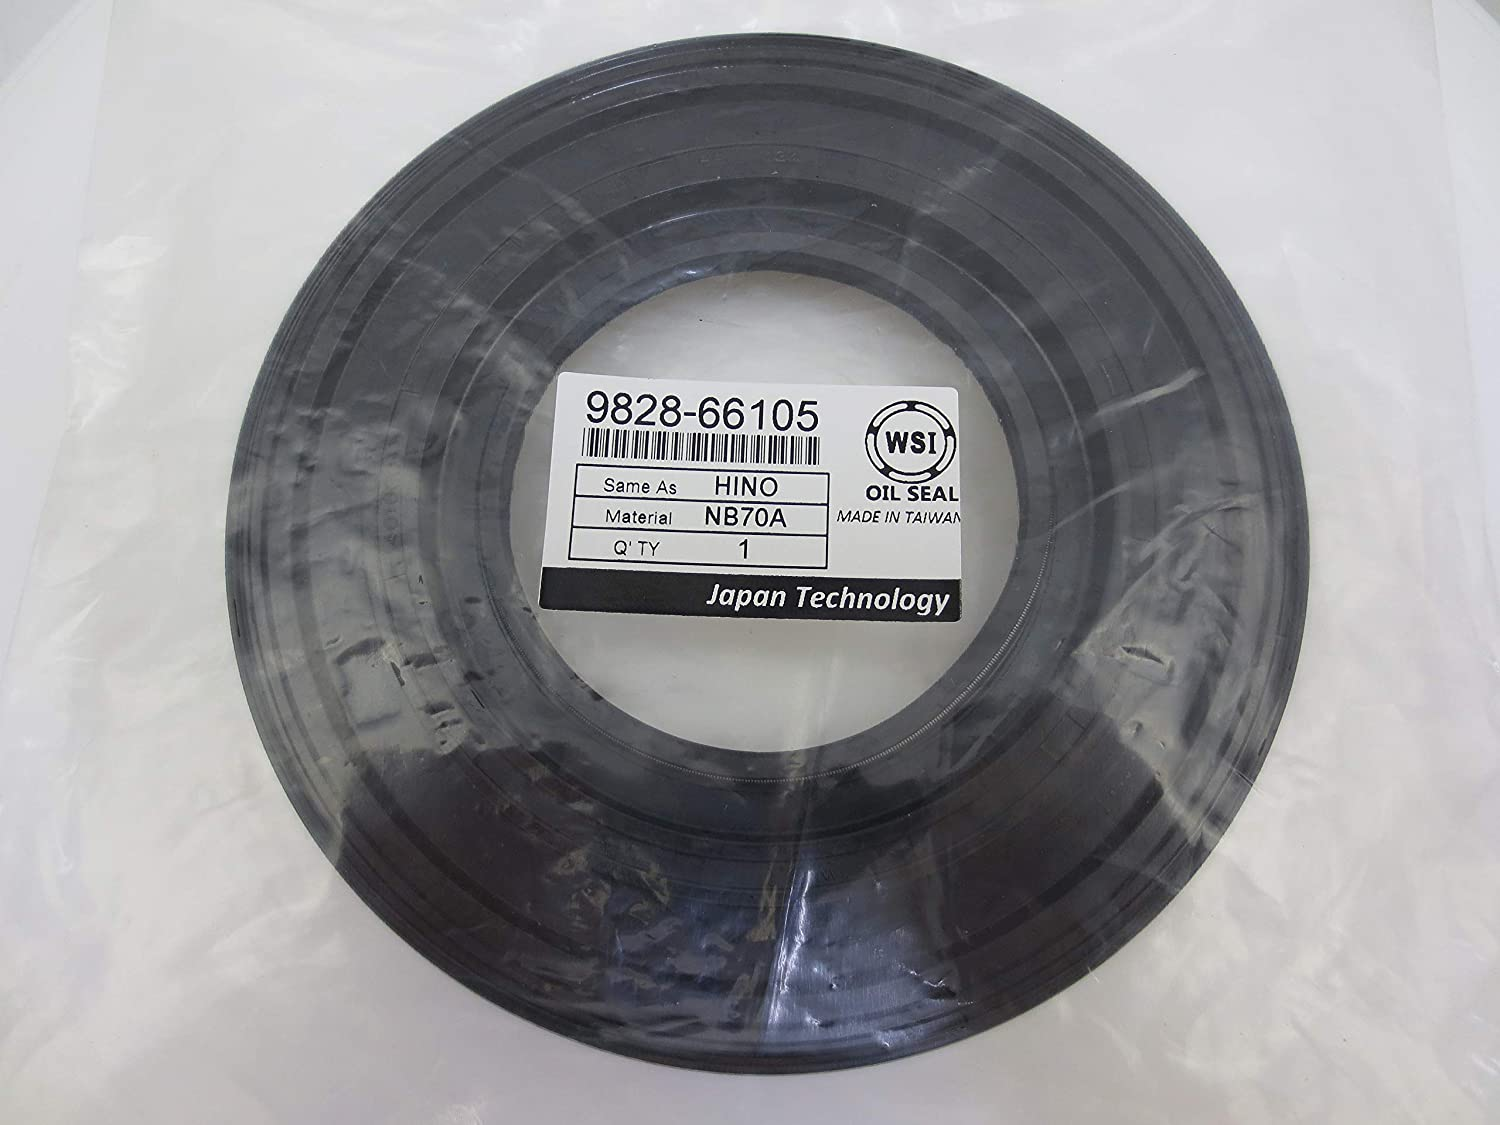 WSI Outlet SALE 9828-66105 Mesa Mall Oil Hino Seal for